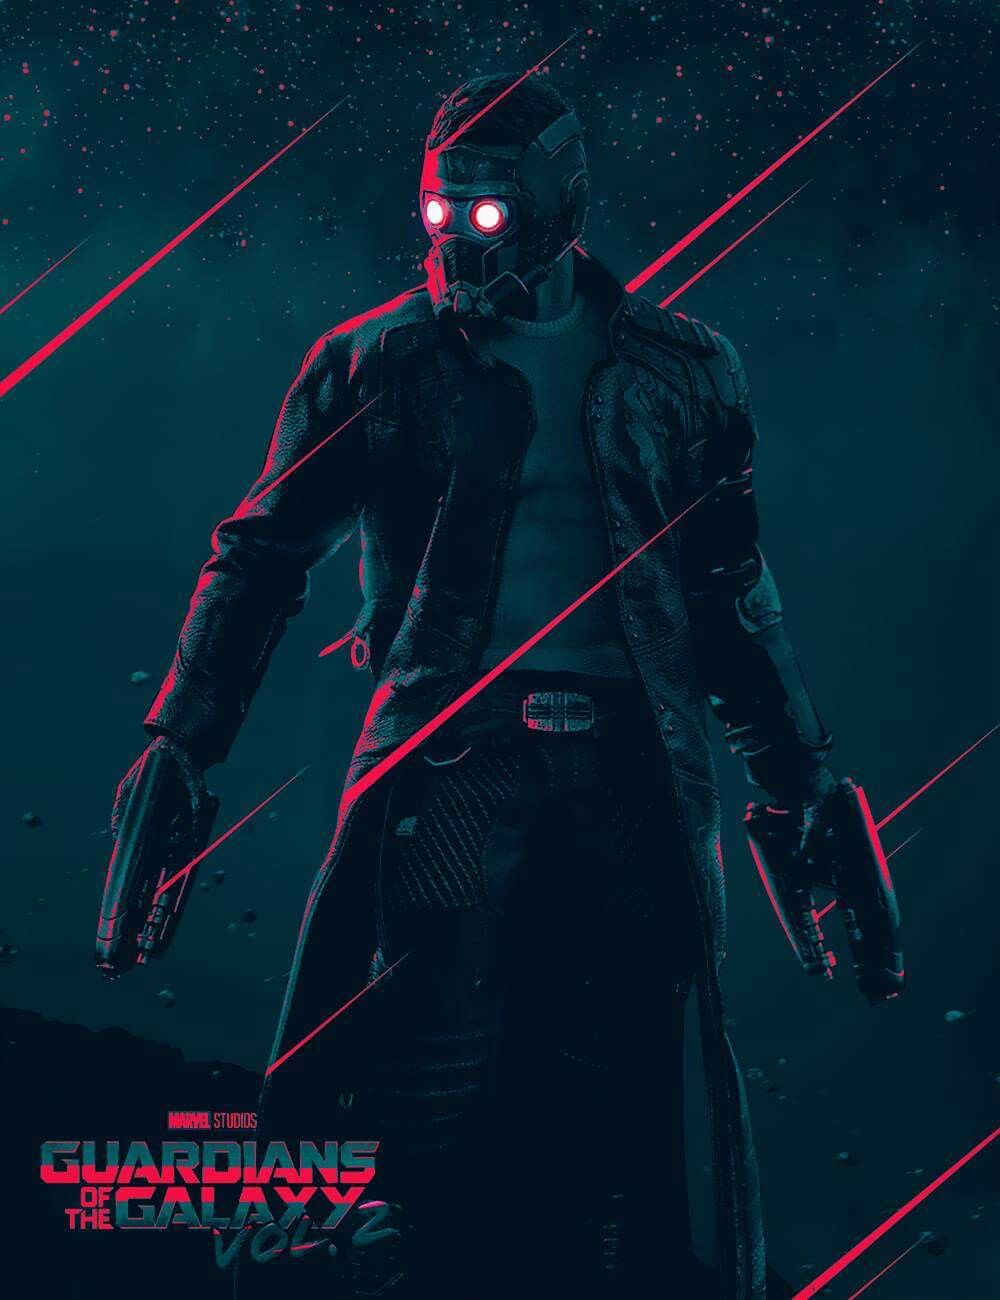 Guardians Of the Galaxy 2 Poster Star Lord | Marvel ...